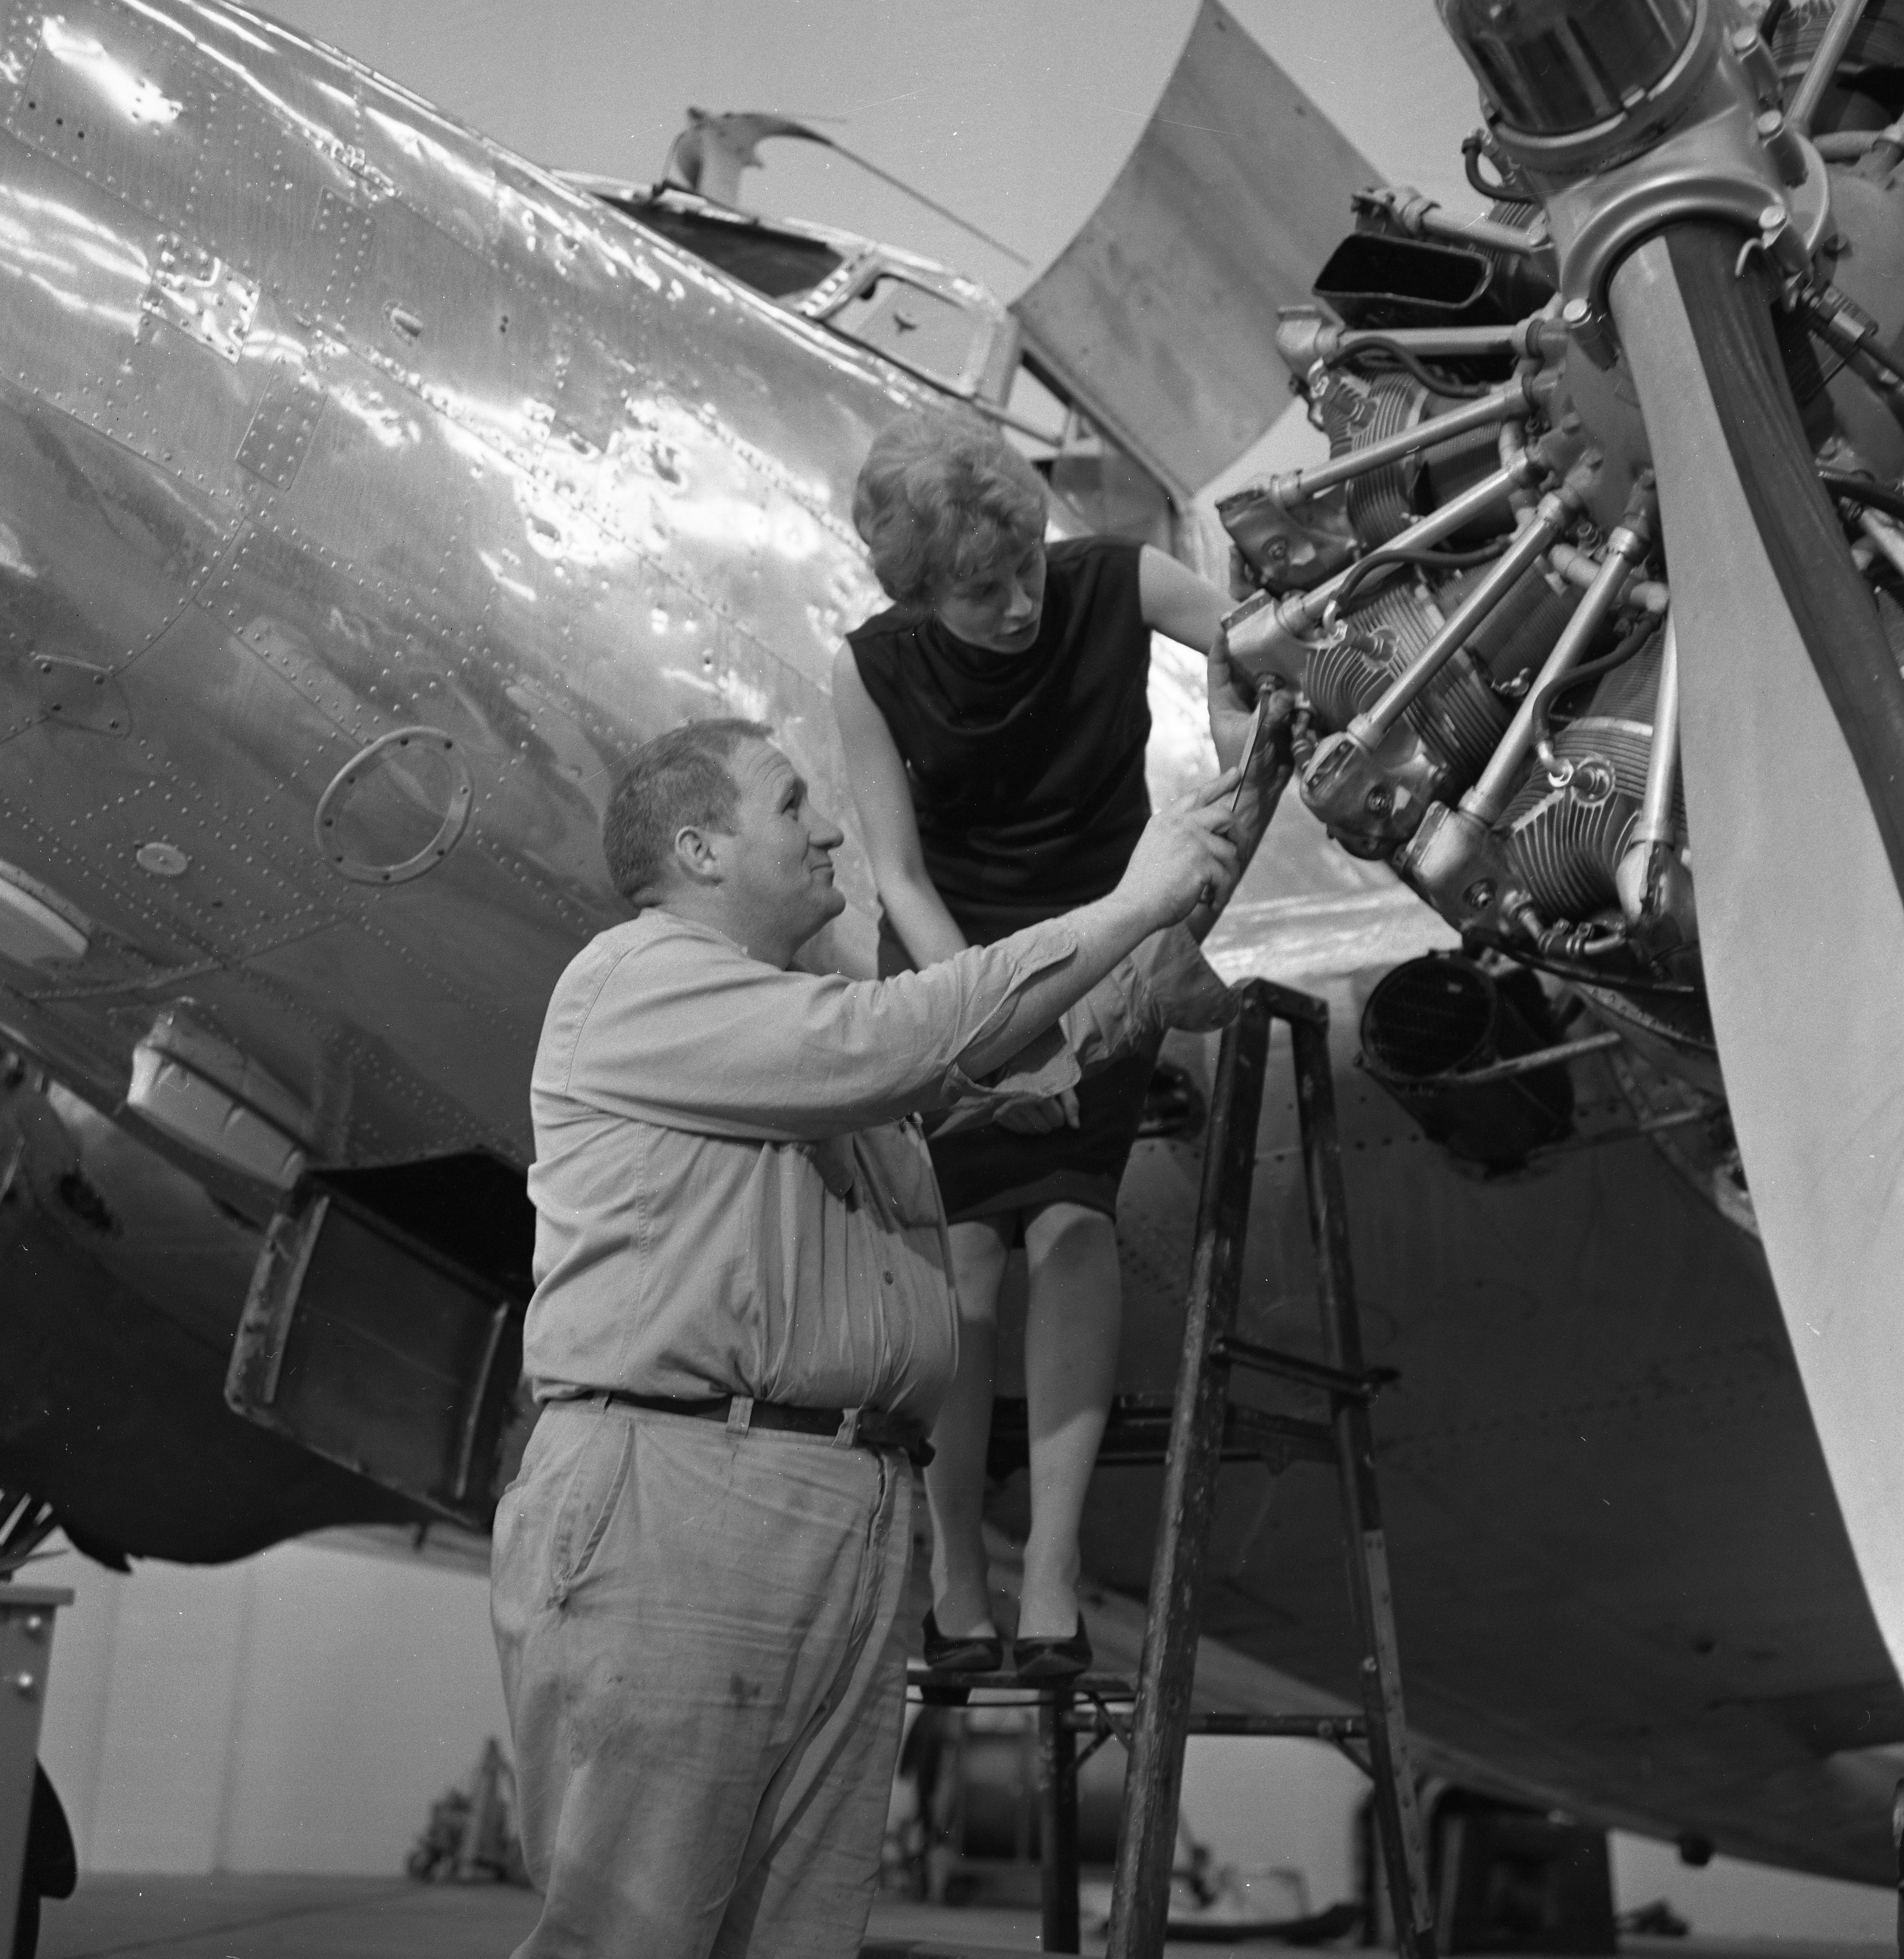 Ann Pellegreno and Lee Koepke Check Propellers of 1937-Vintage Plane for Amelia Earhart Commemorative Flight, May 1967 image